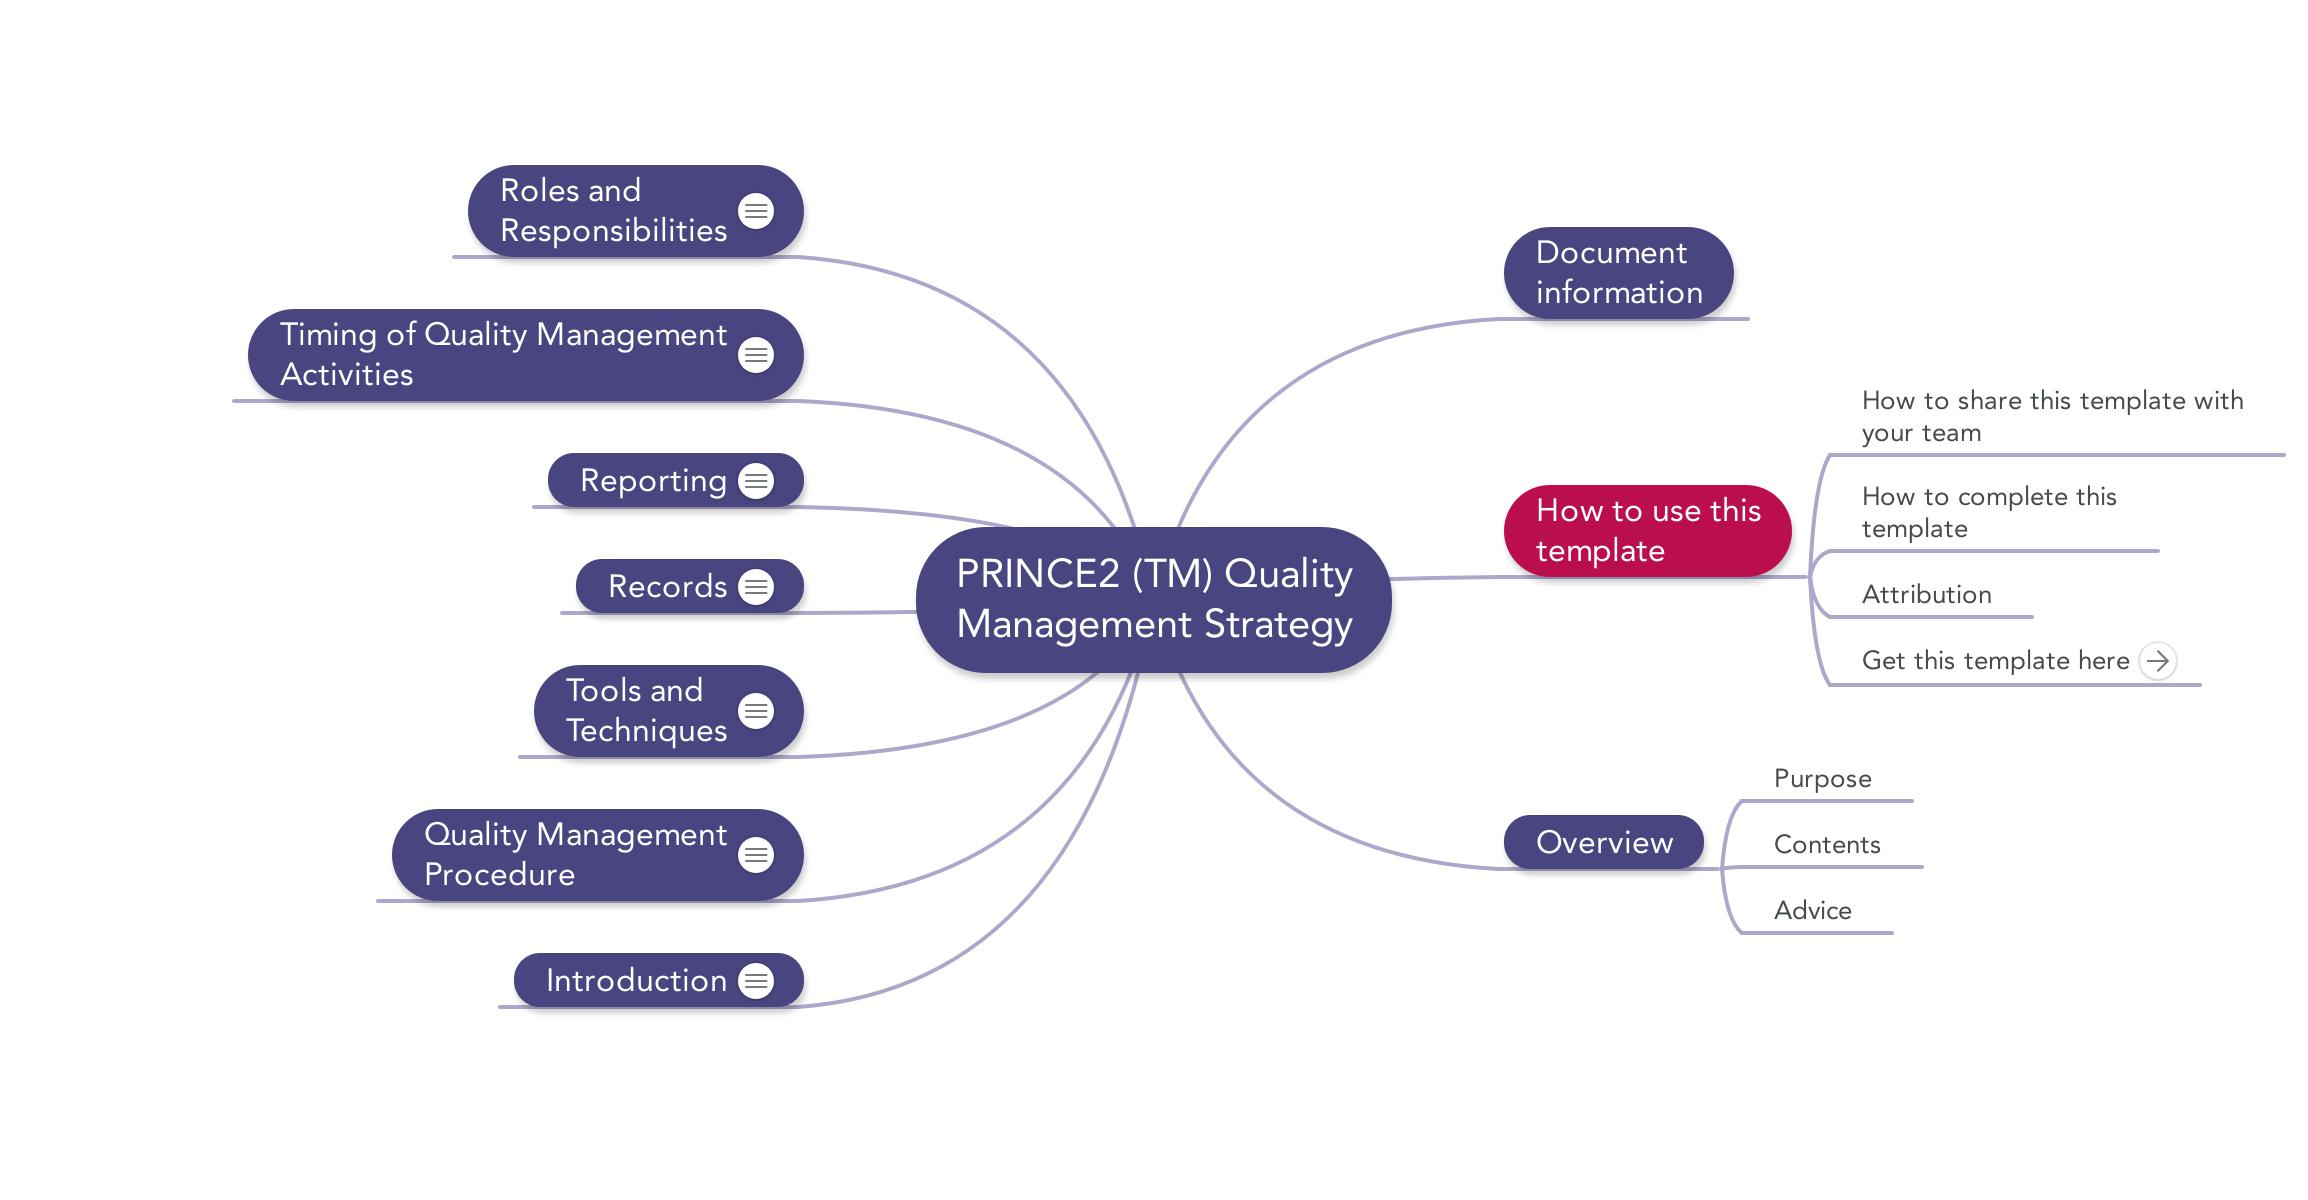 Prince2 quality management strategy download template for Prince2 project plan template free